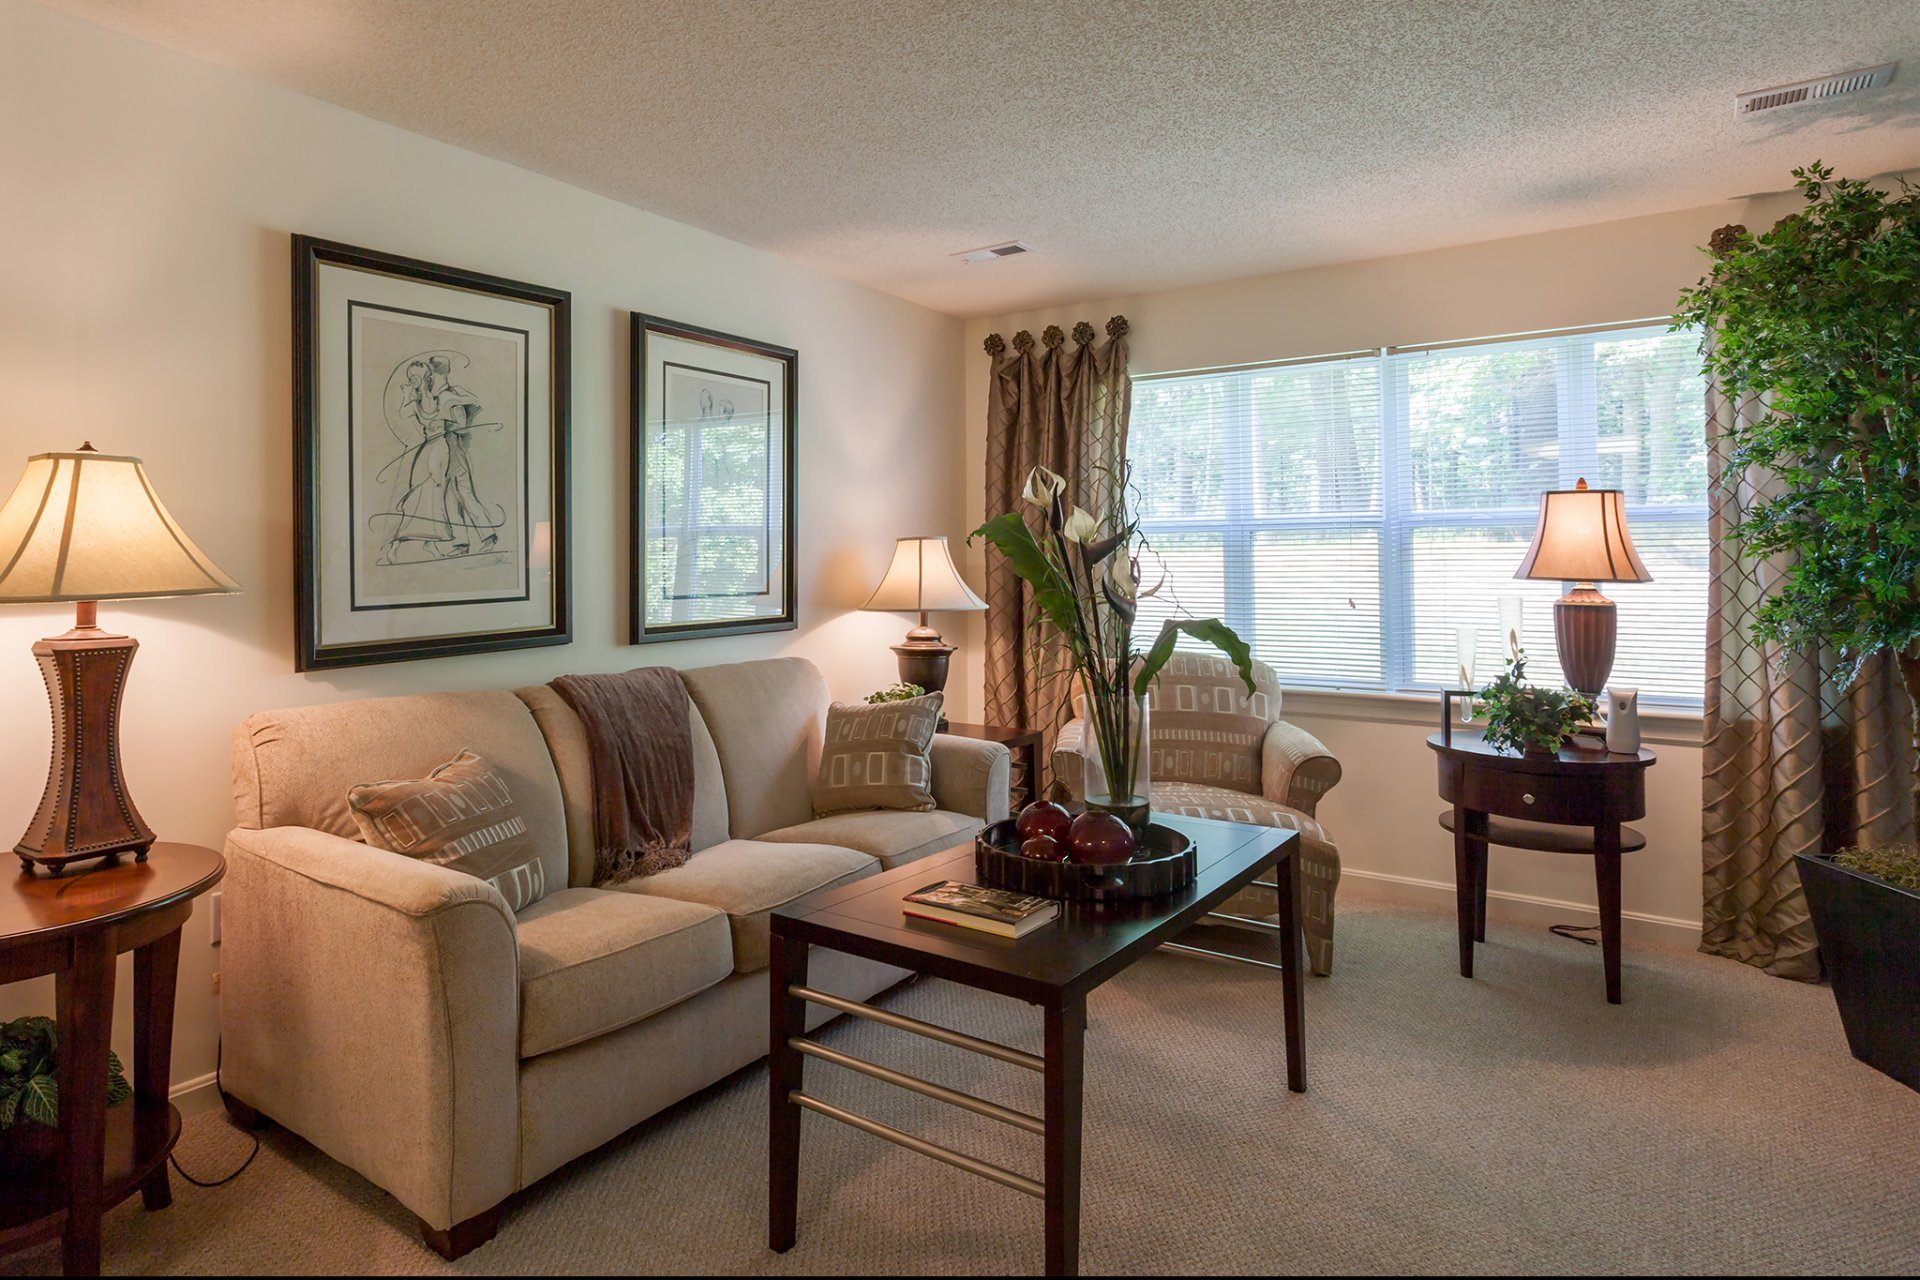 Living Room with Carpeted Flooring at The Preserve Apartments in Walpole, MA